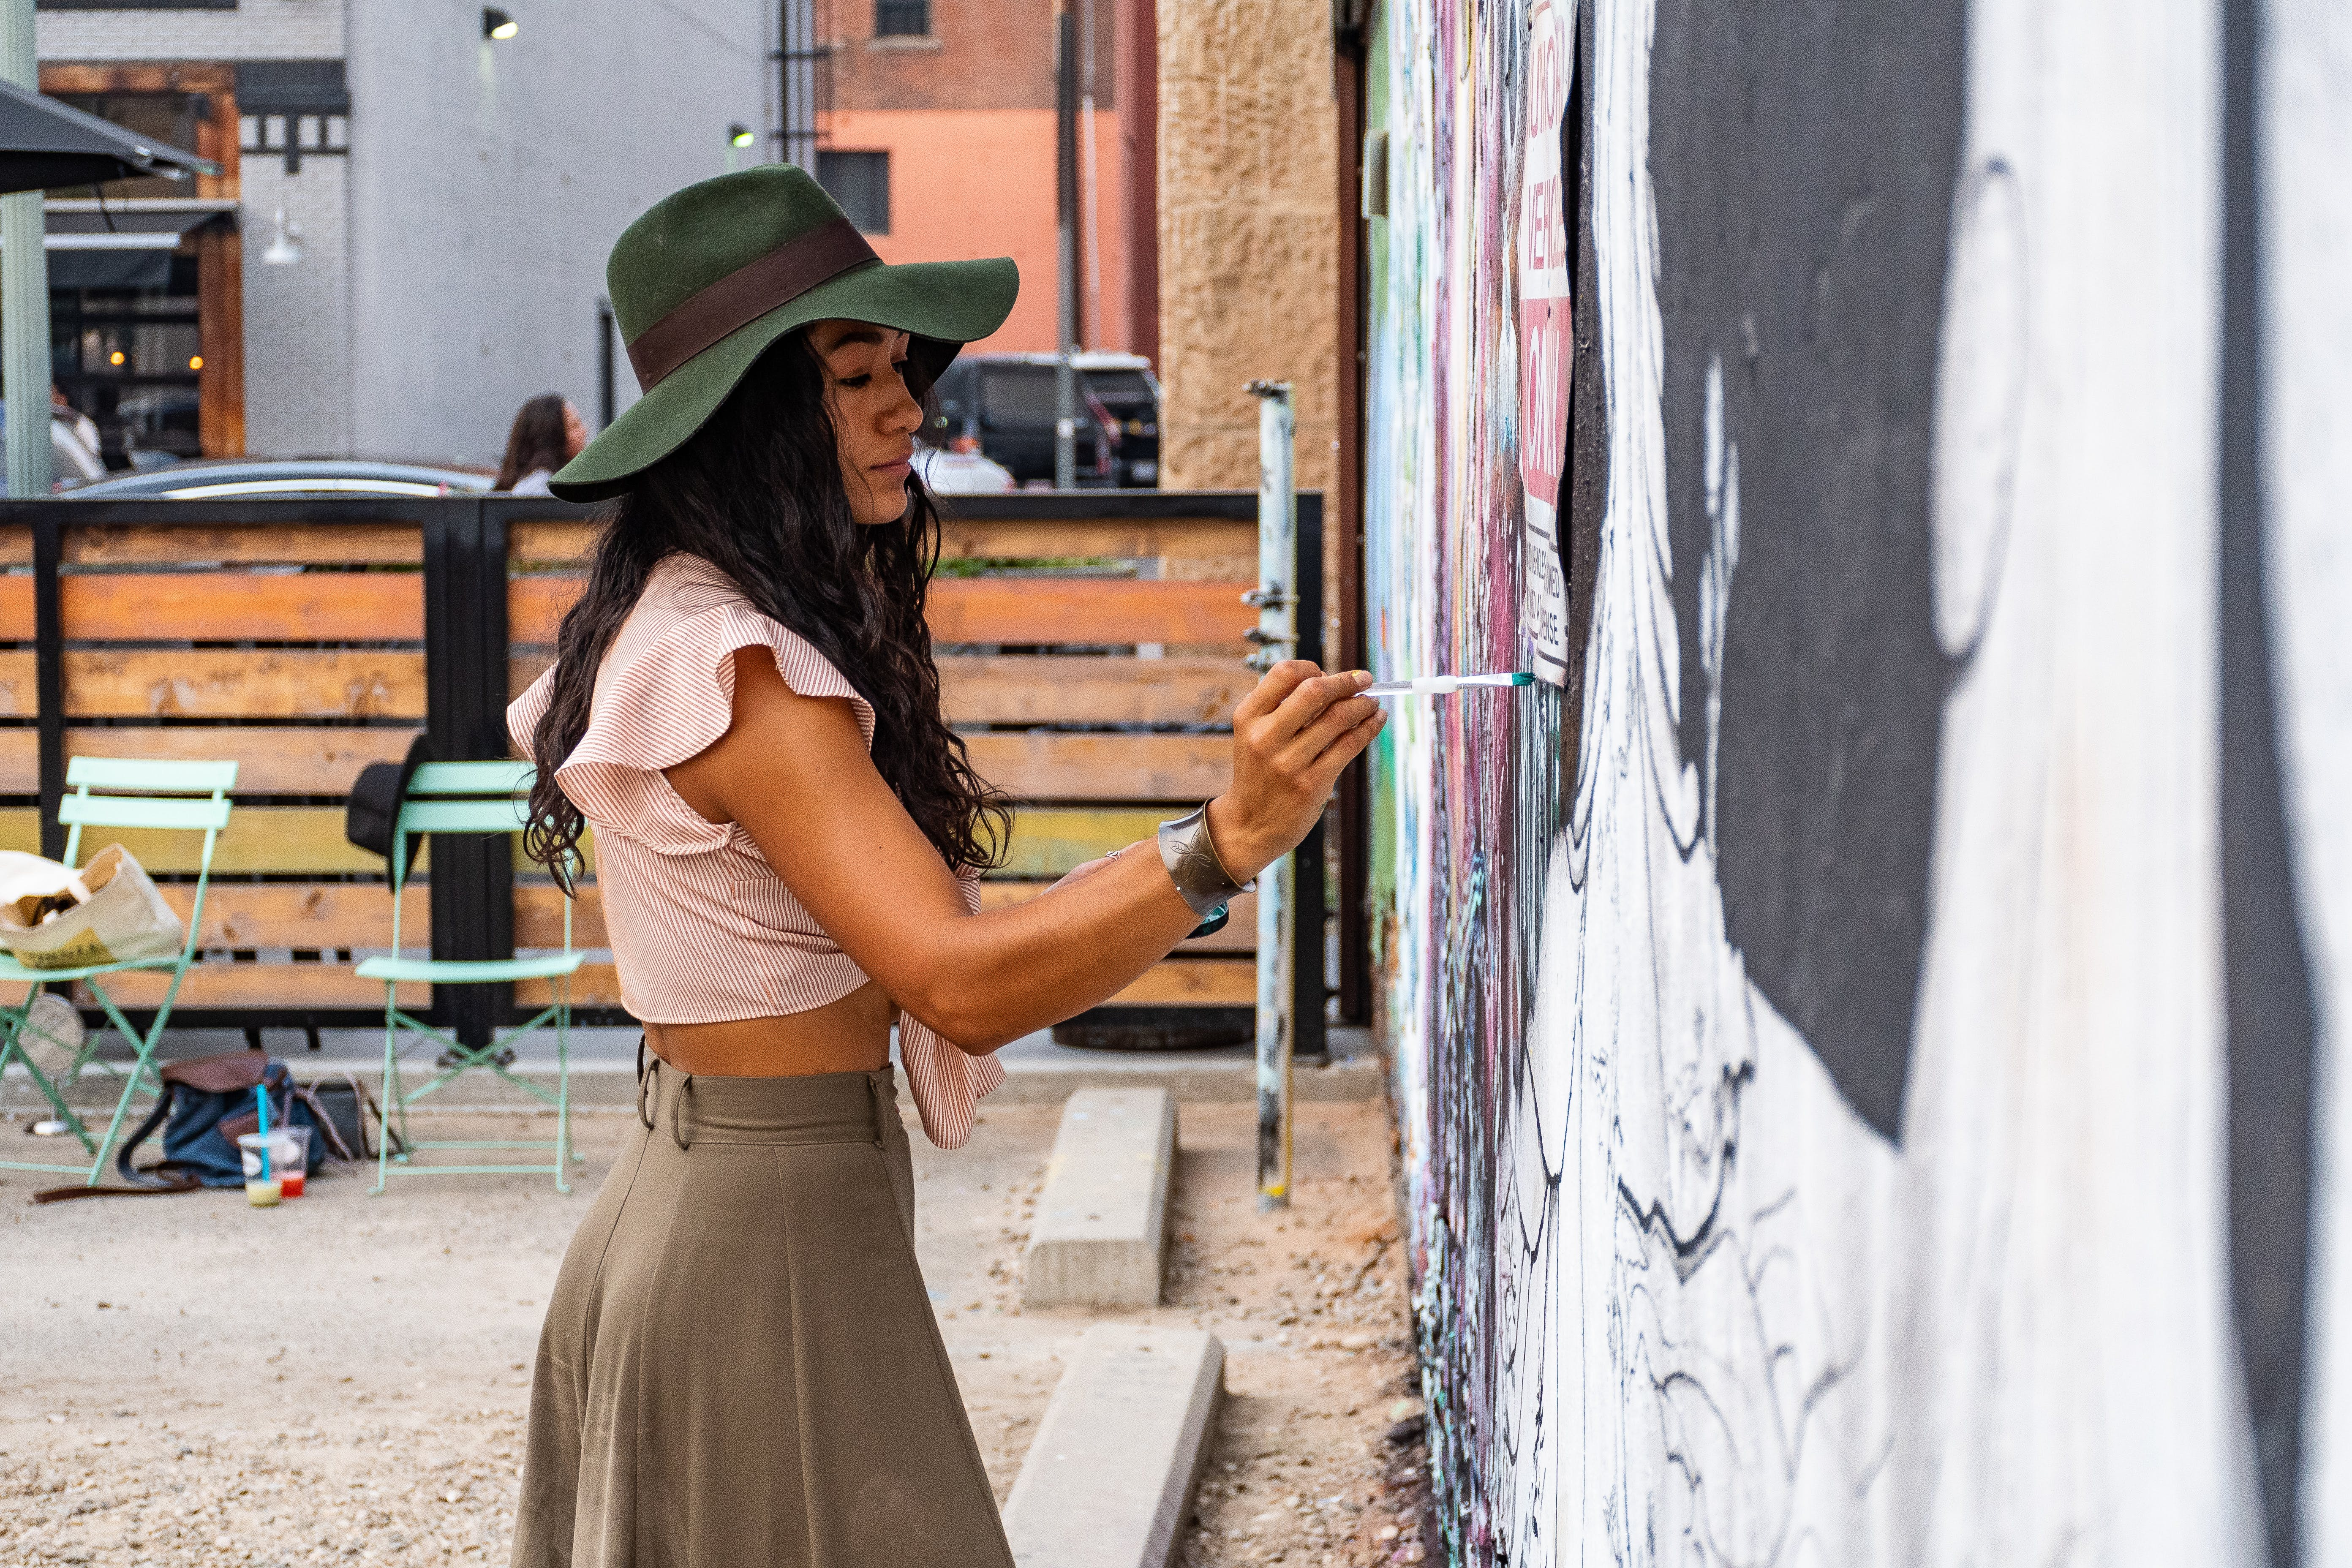 Woman Painting on Wall